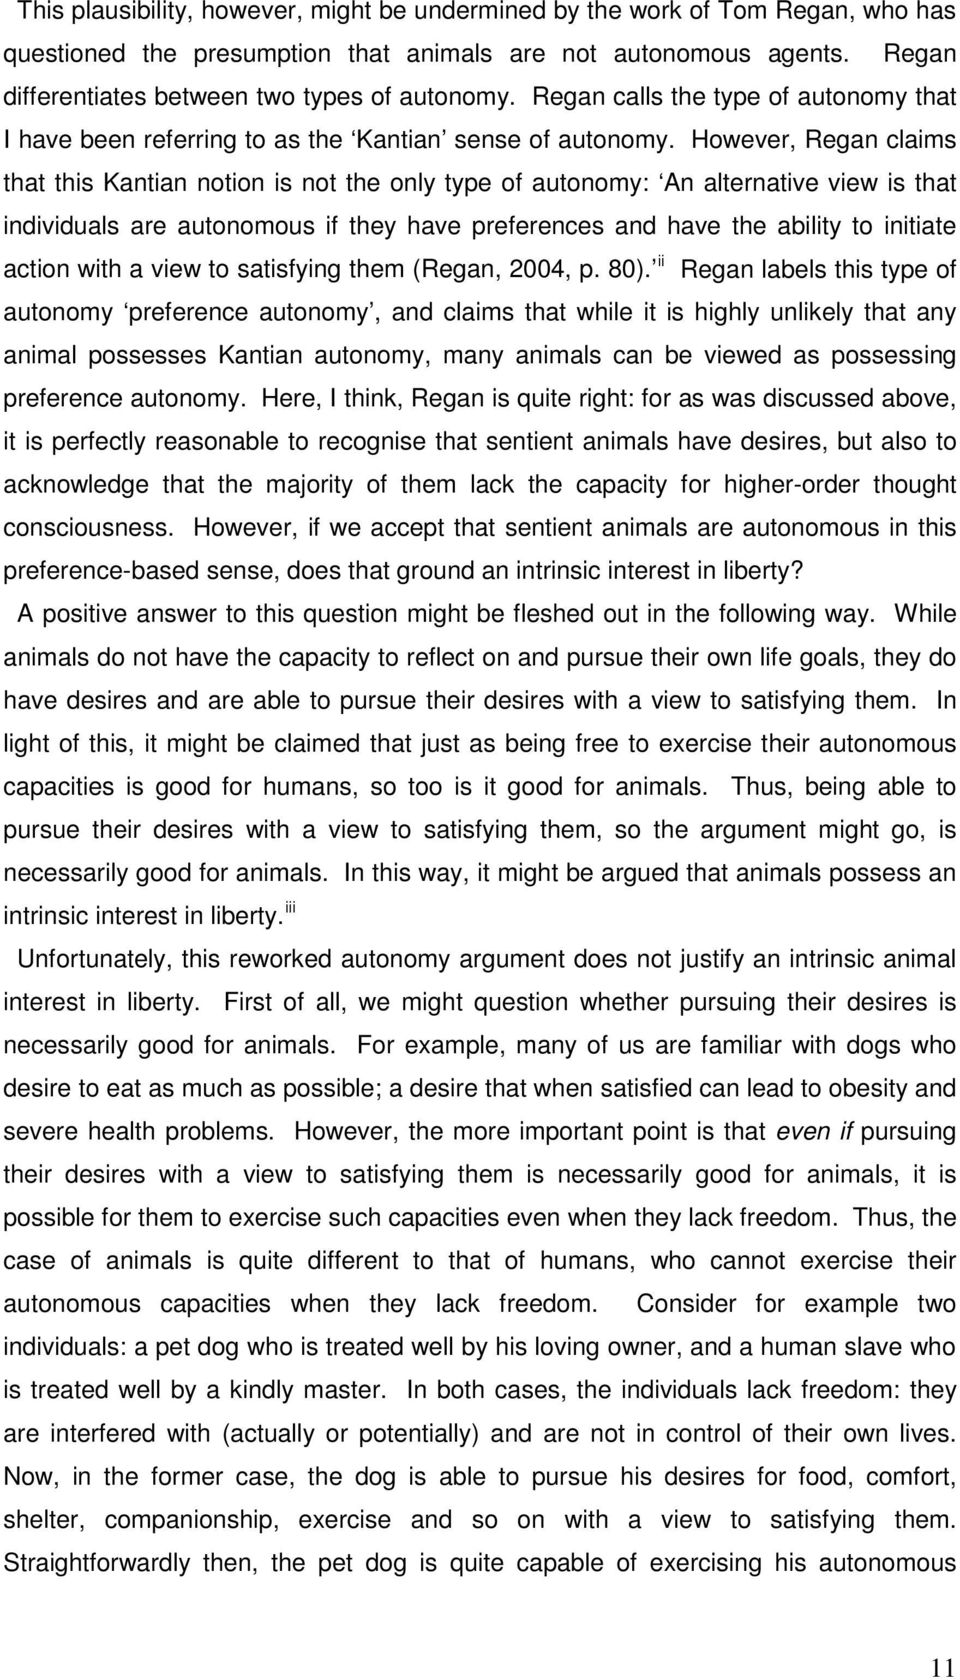 However, Regan claims that this Kantian notion is not the only type of autonomy: An alternative view is that individuals are autonomous if they have preferences and have the ability to initiate